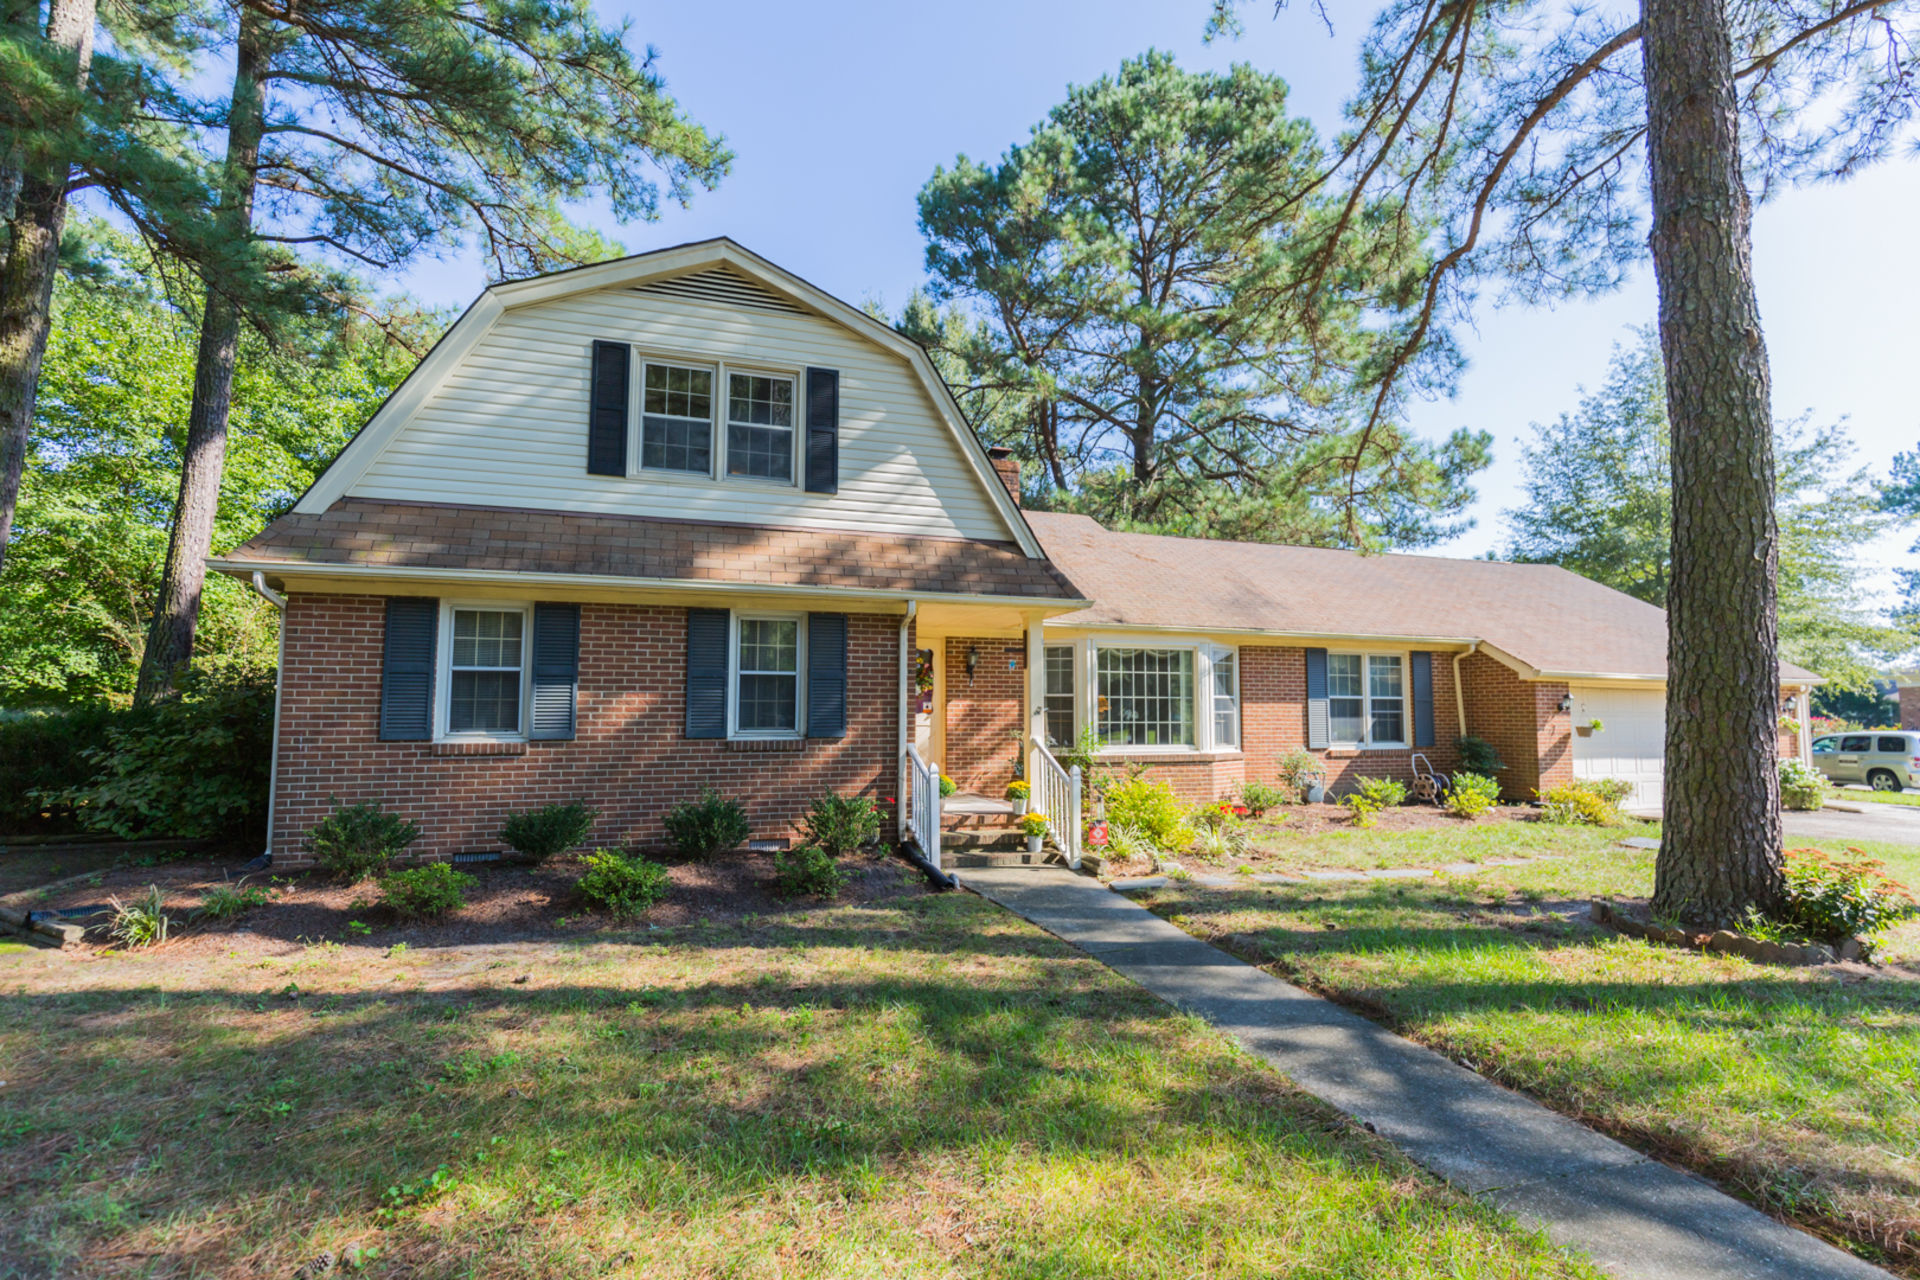 Brick Charmer in Camelot Golf Course Community